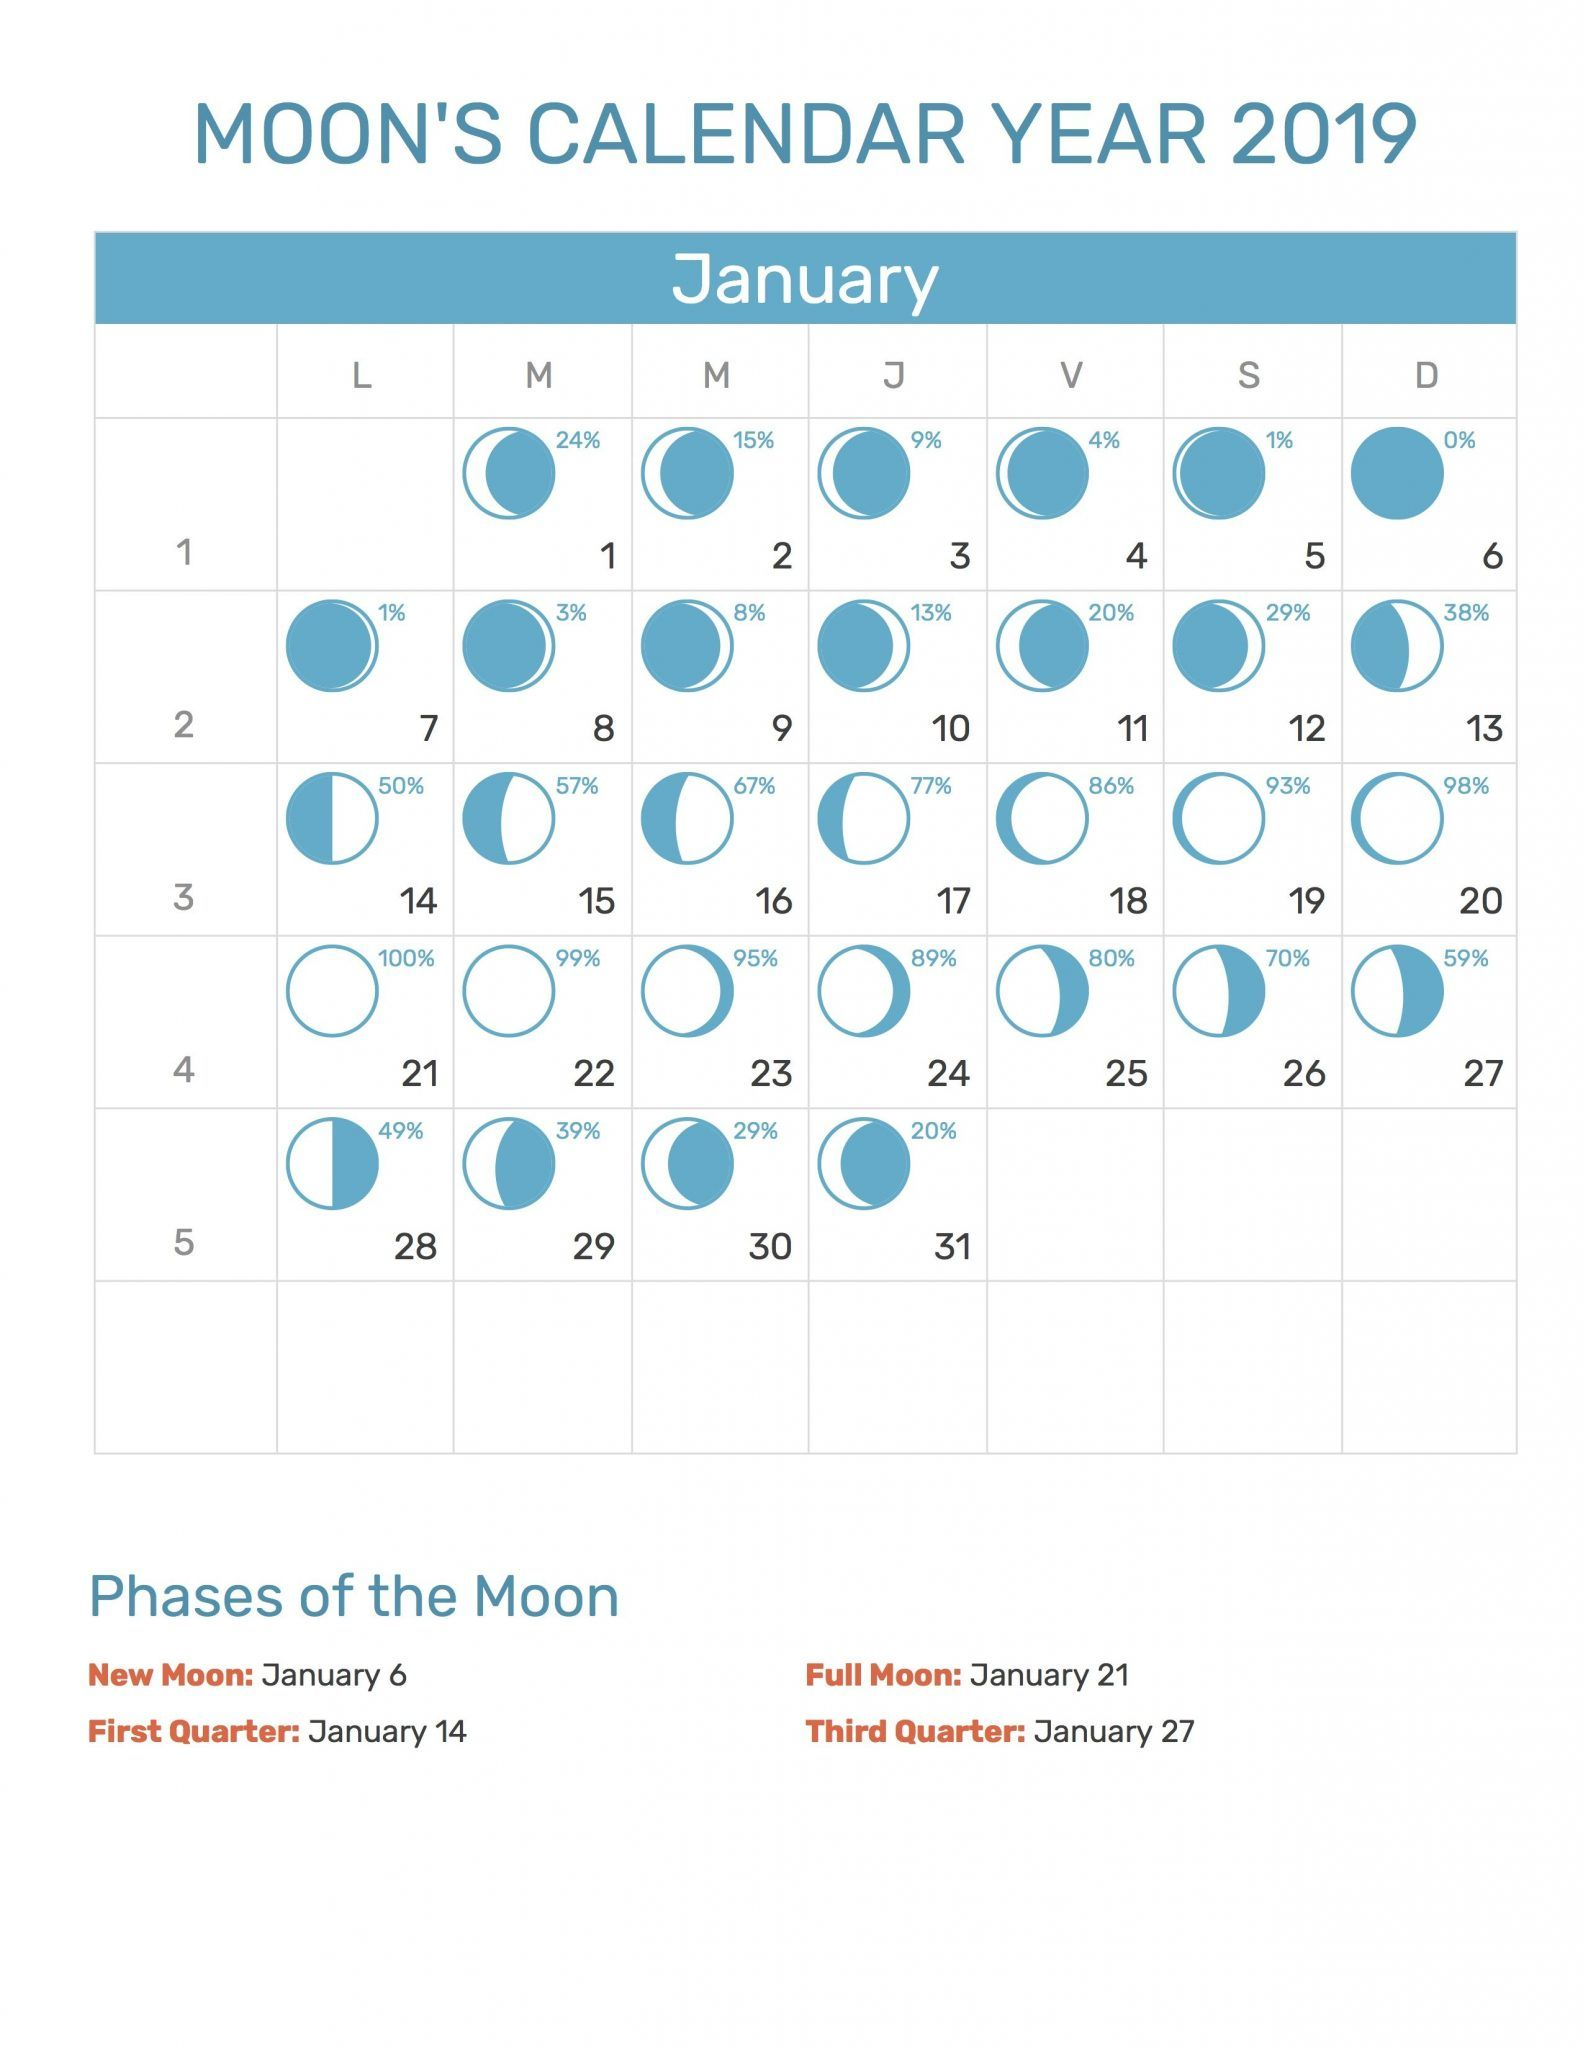 Full Moon Calendar For 2019 January 2019 Full Moon Calendar | Blank January 2019 Calendar